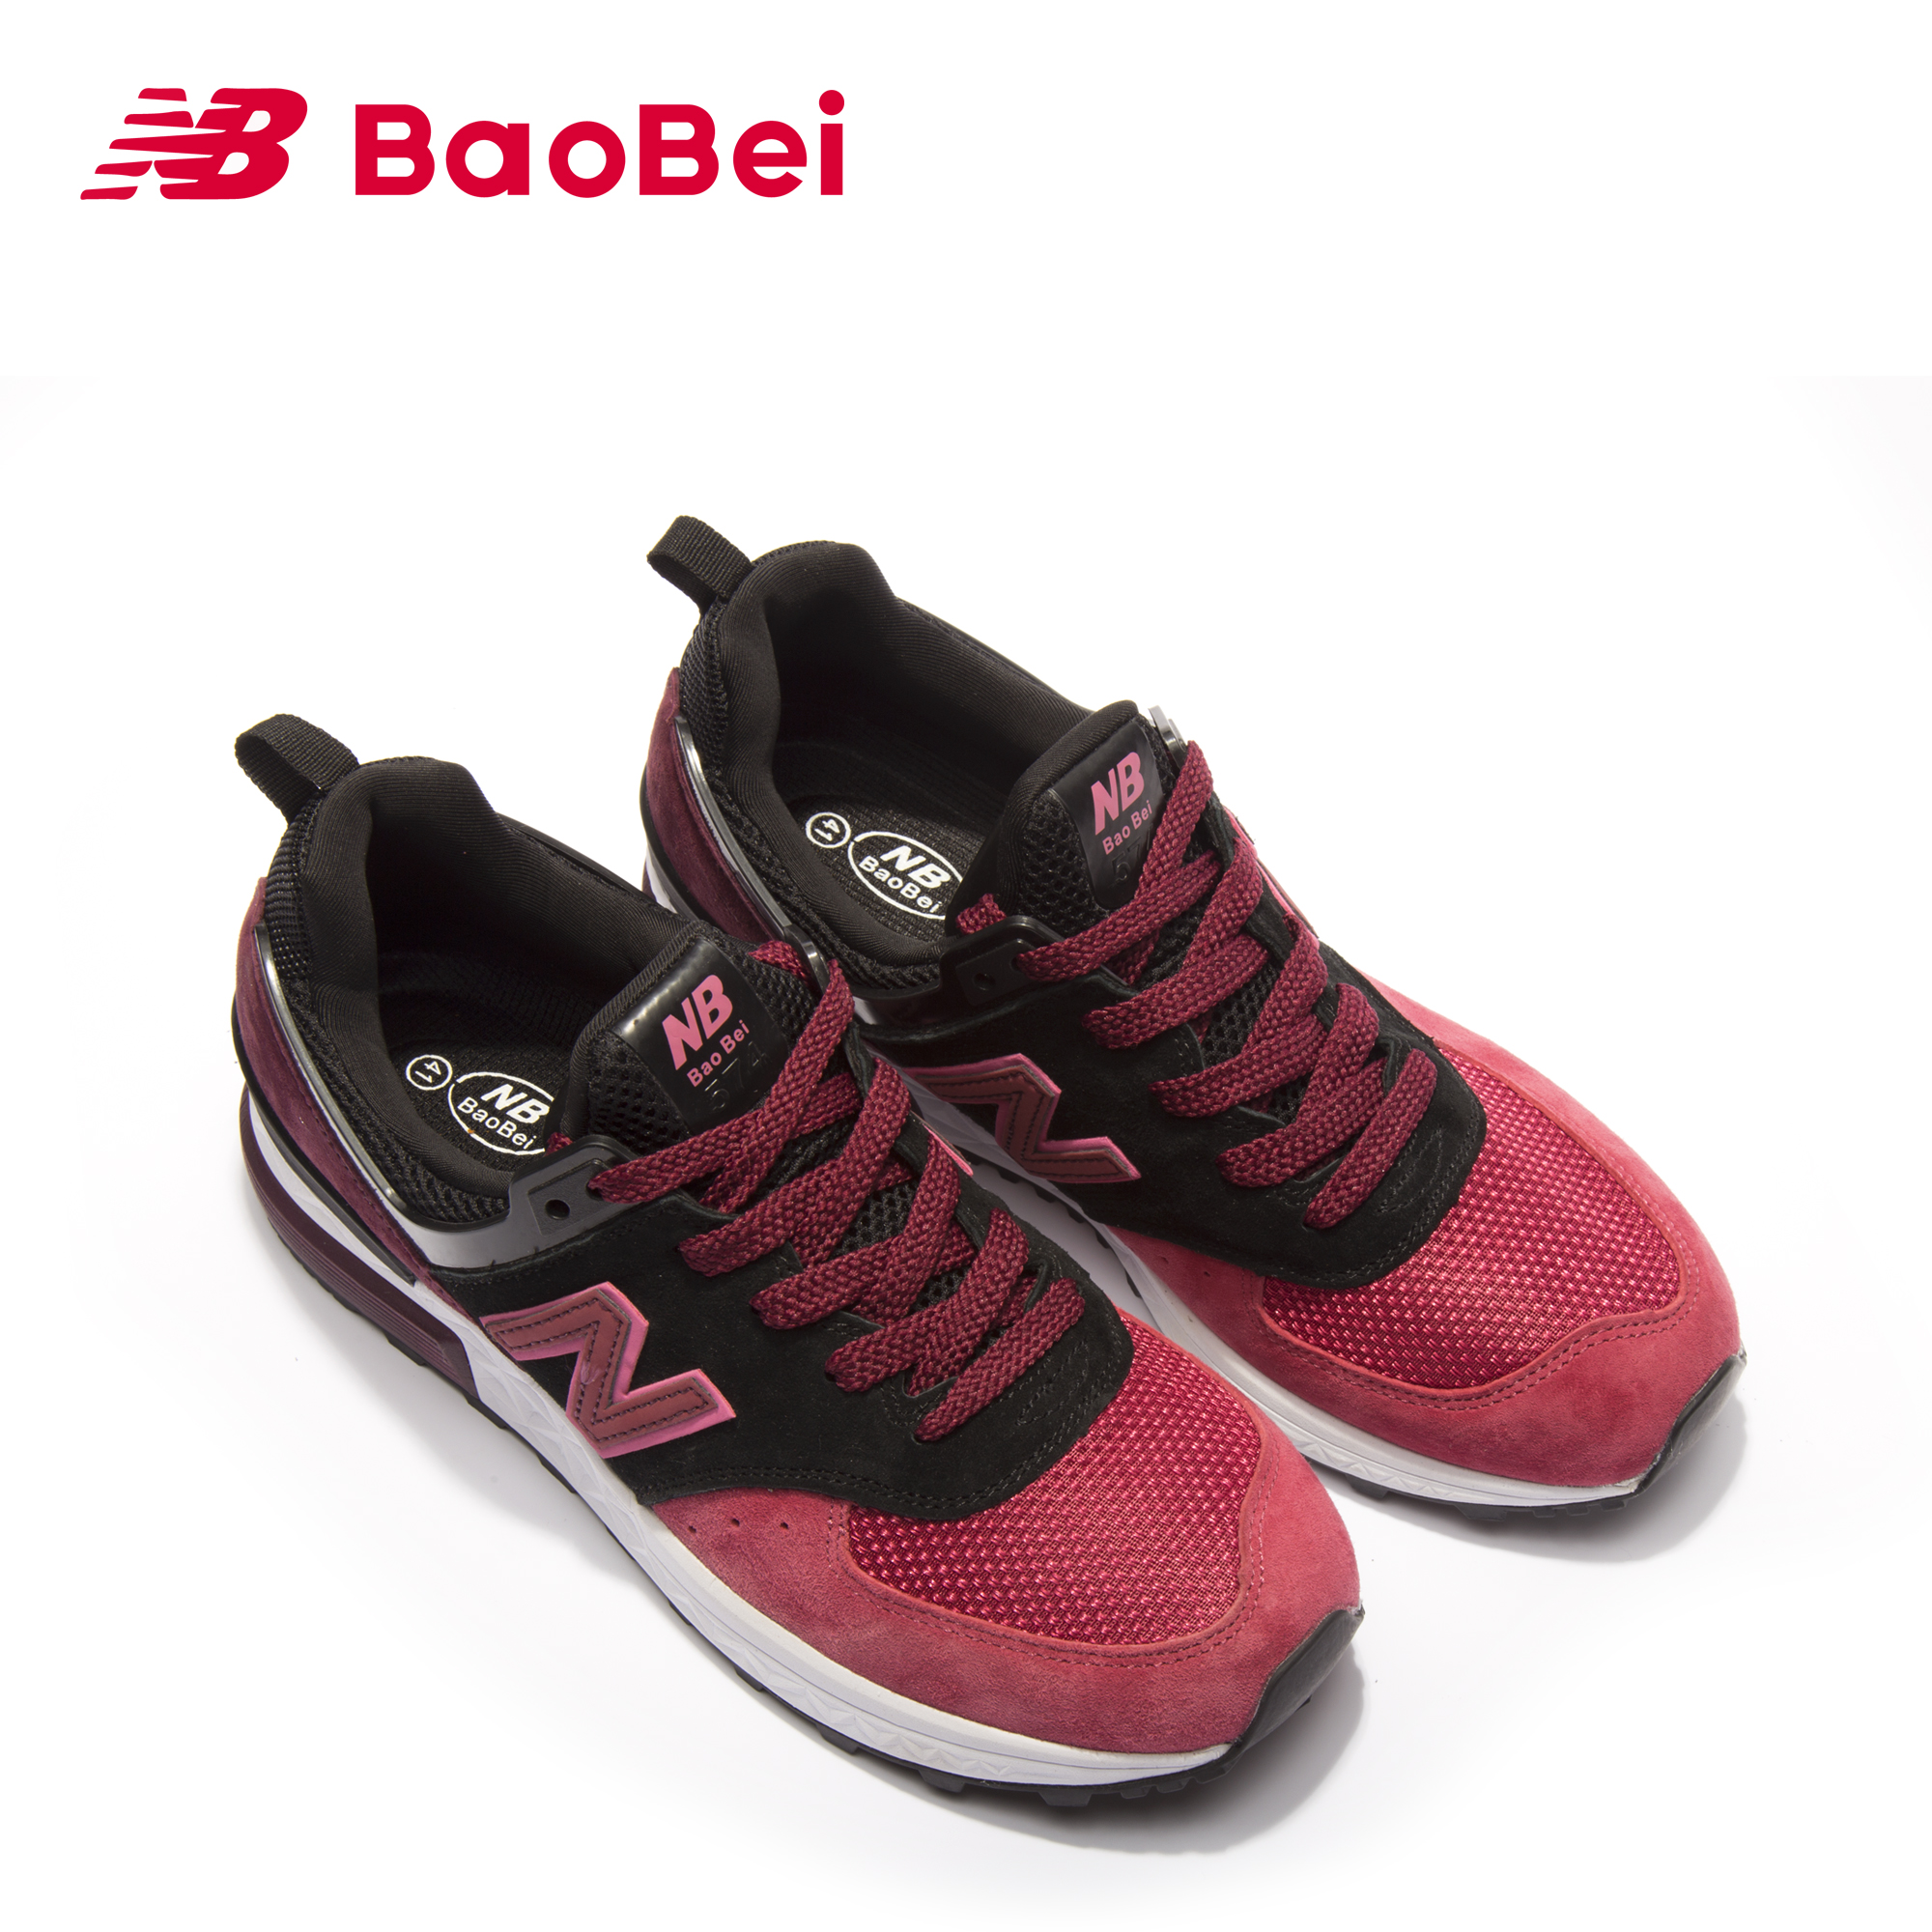 the latest 2945d 8b0ad New NB BaoBei 574 Men s Balance Running shoes zapatillas hombre deportiva  sneakers chaussure sport homme scarpe donna sportive-in Running Shoes from  Sports ...